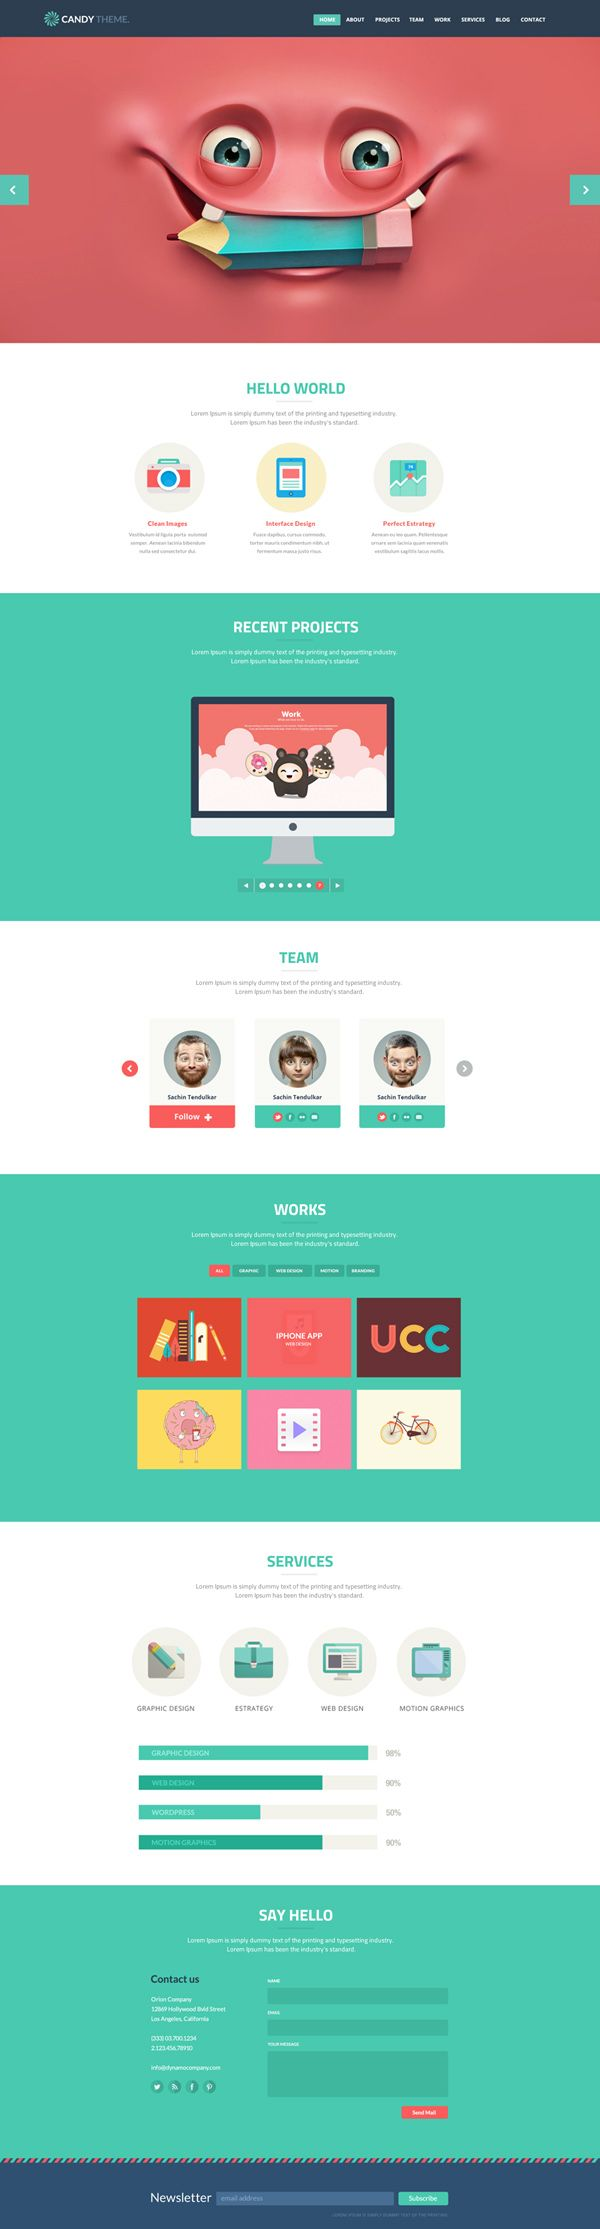 Site Templates - Candy - Flat Onepage Responsive HTML5 Template   ThemeForest #webdesign